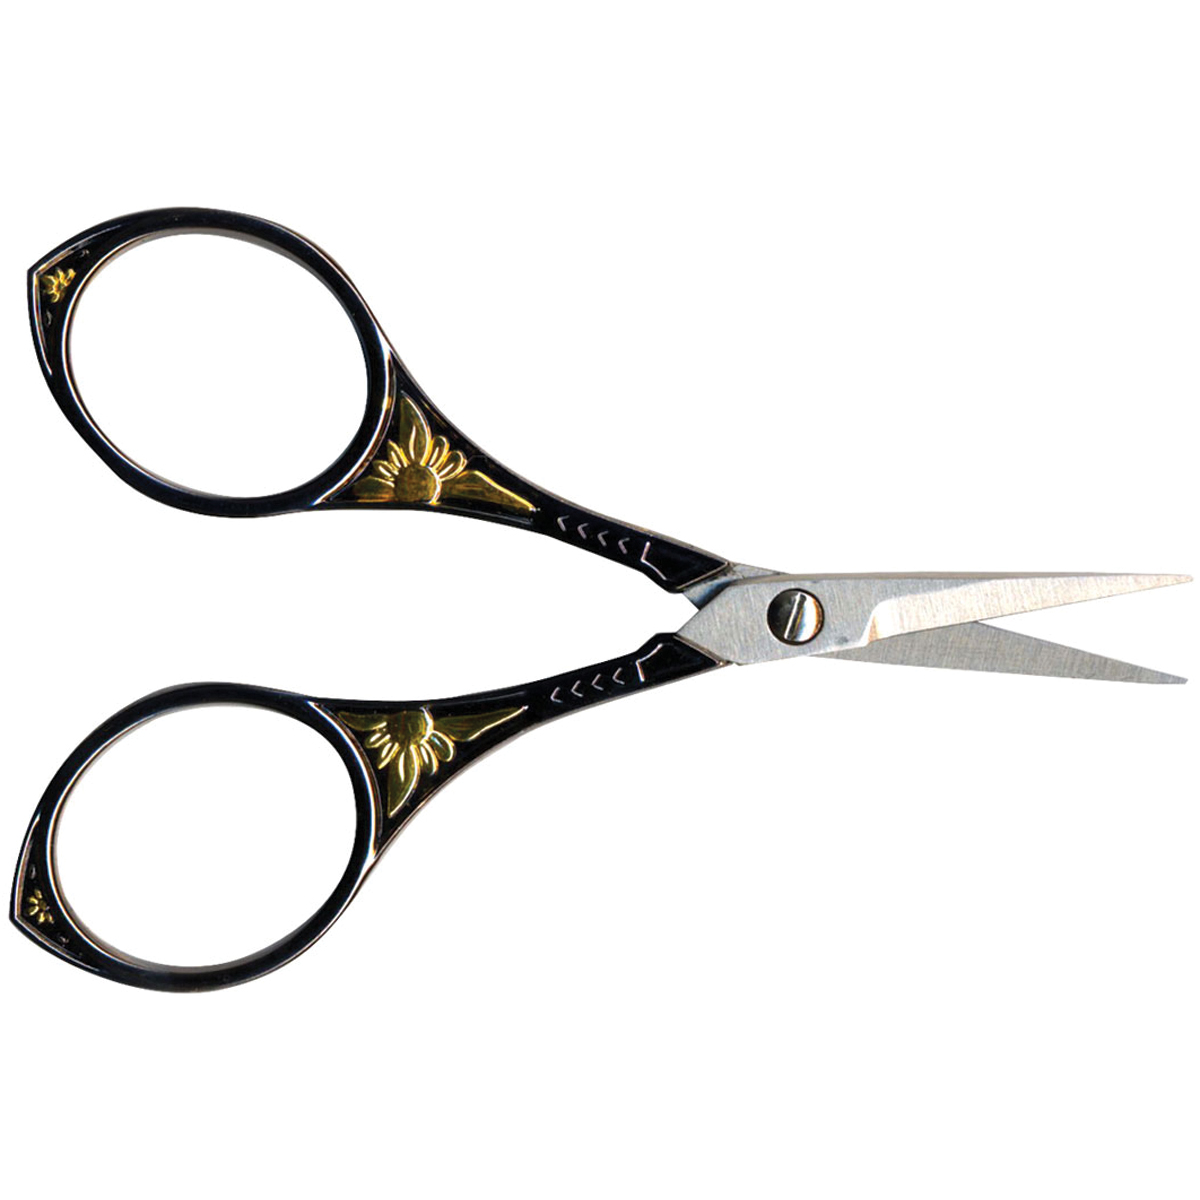 Stainless Steel Embroidery Scissors 4\u0022-Gunmetal With Gold Round